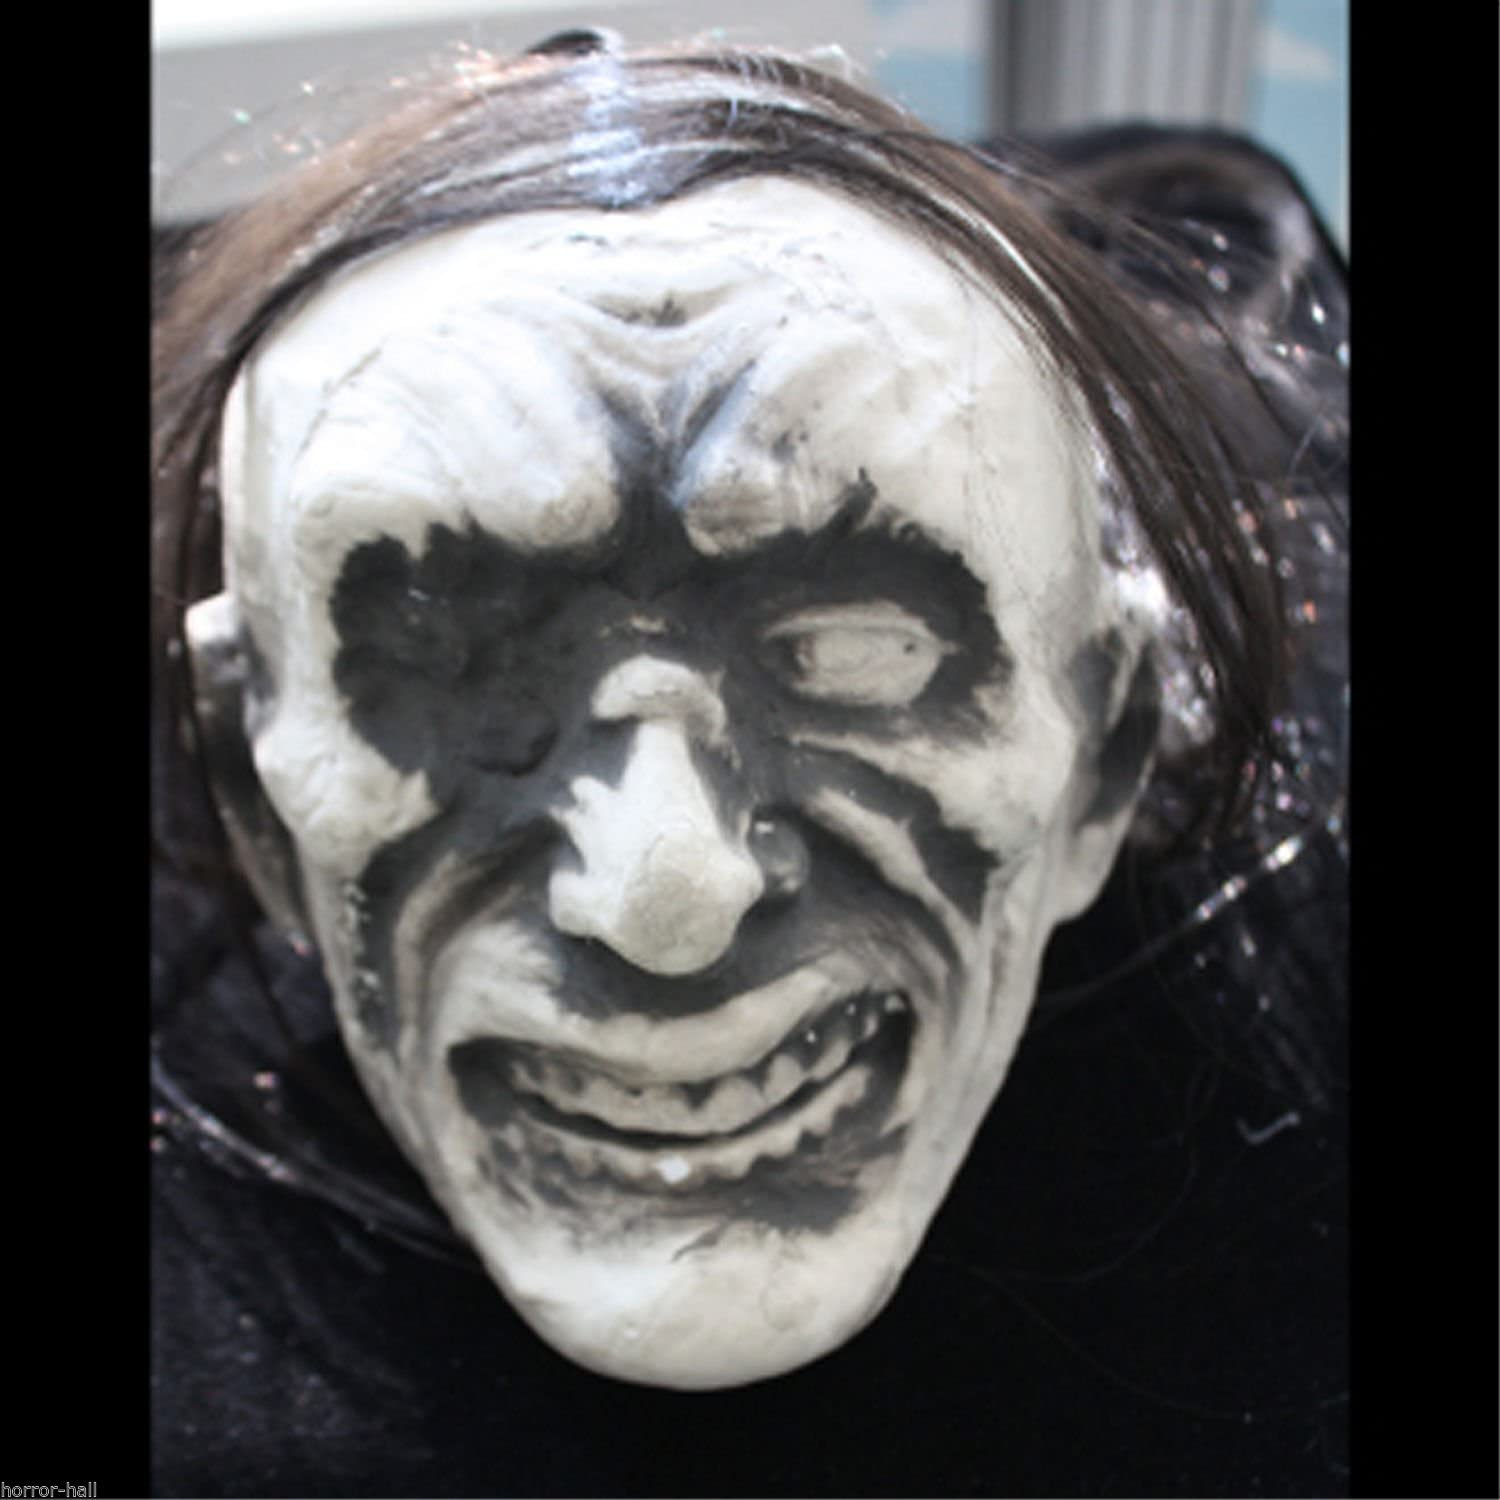 LifeSize Sculpted Styro Face ZOMBIE SEVERED HUMAN HEAD Ghoul